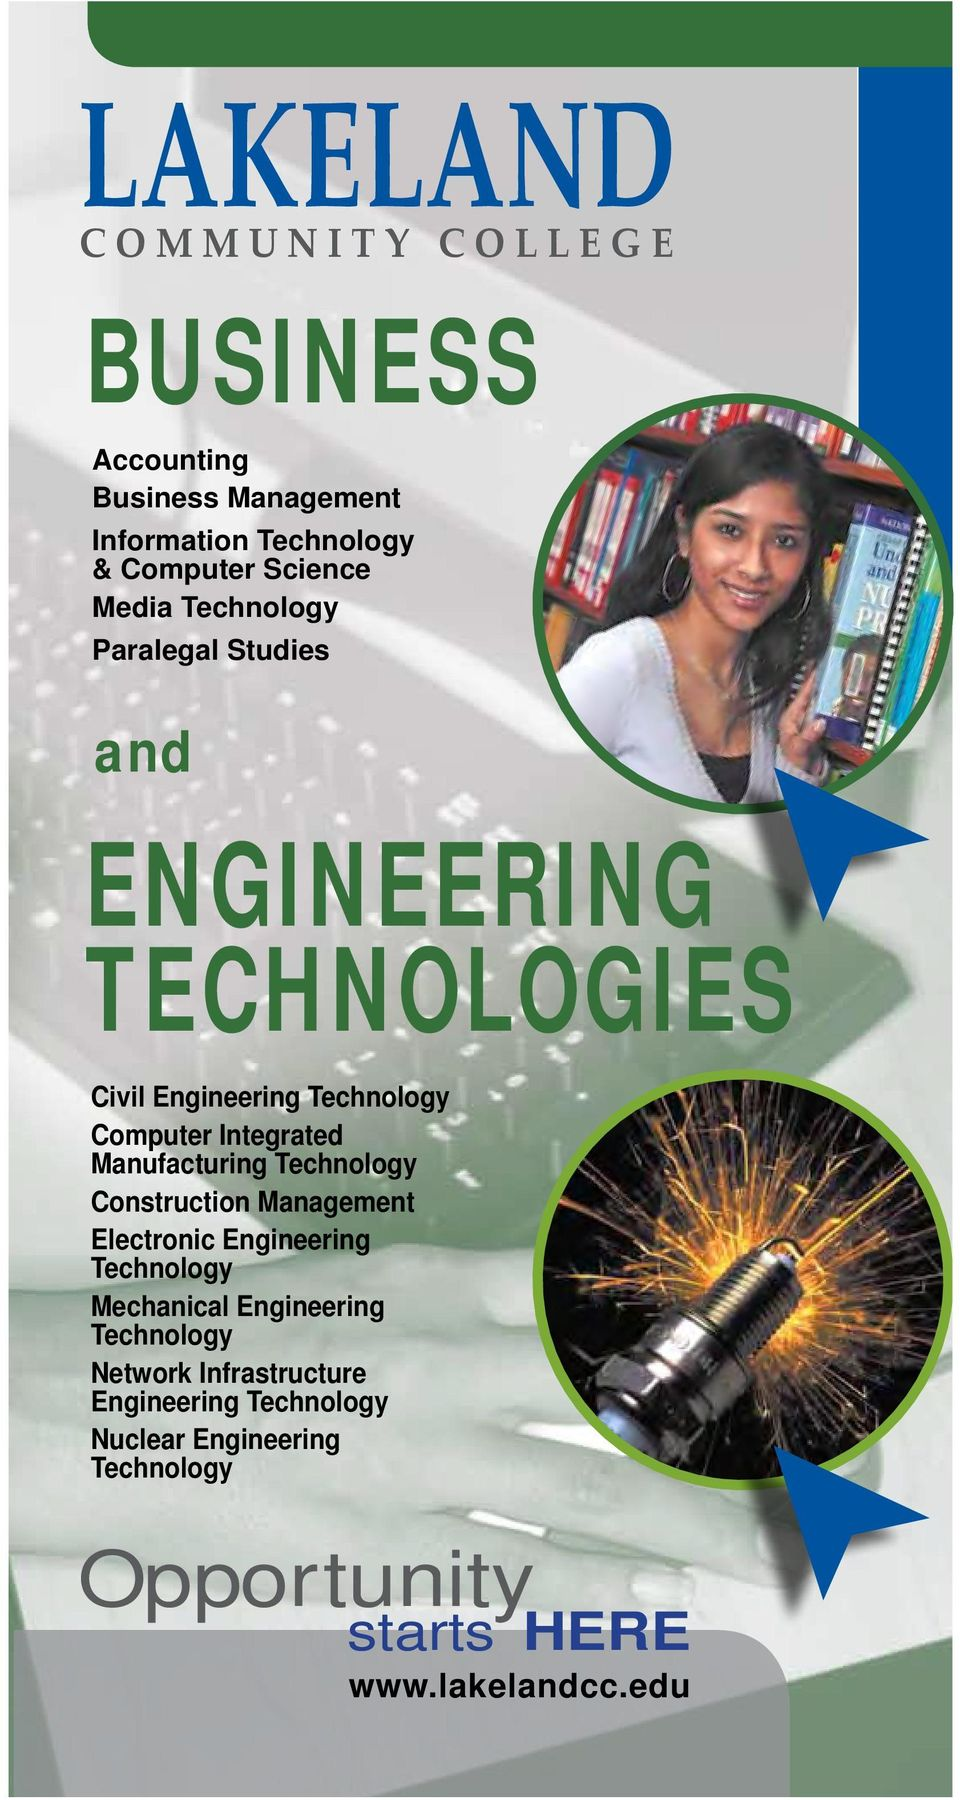 Integrated Manufacturing Construction Management Electronic Engineering Mechanical